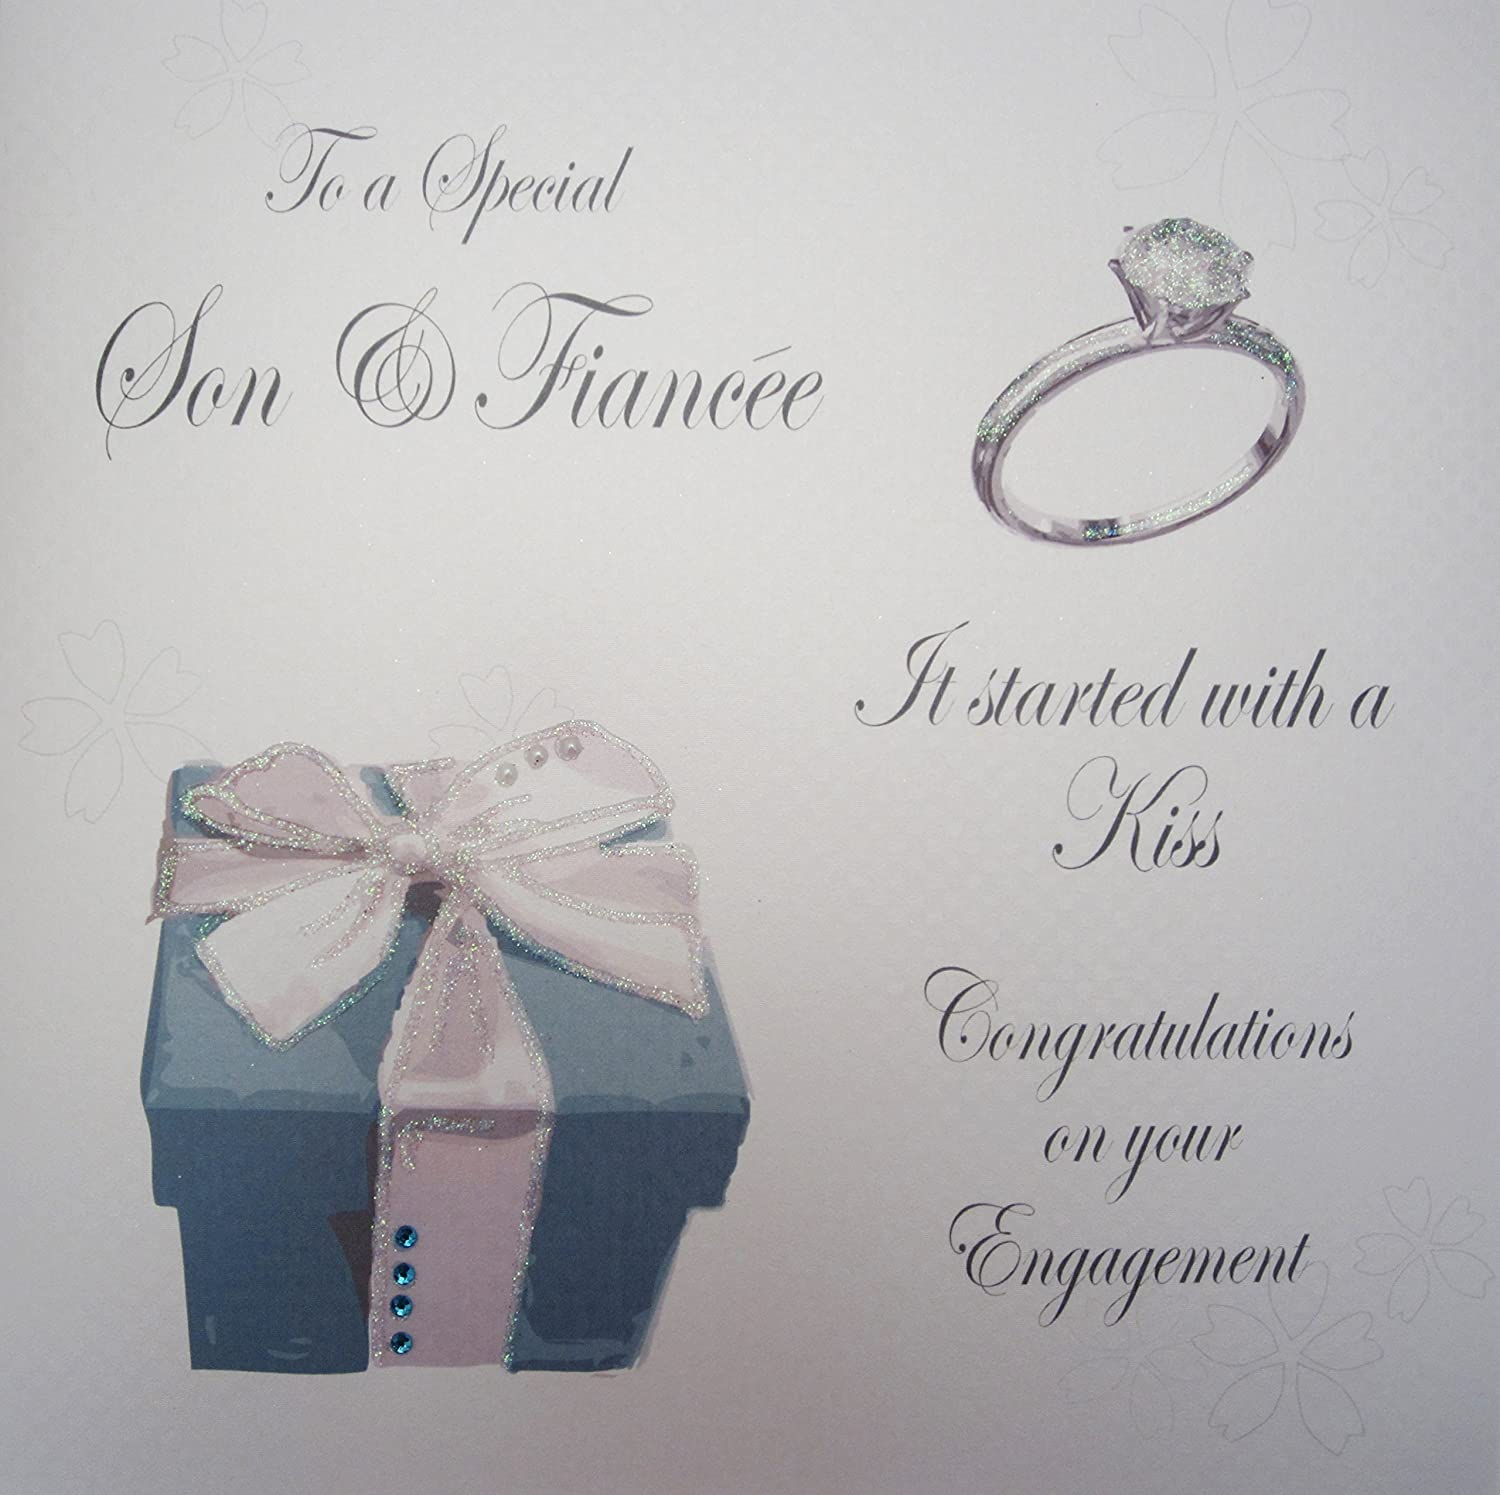 white cotton cards to a special son and fiancee congratulation on